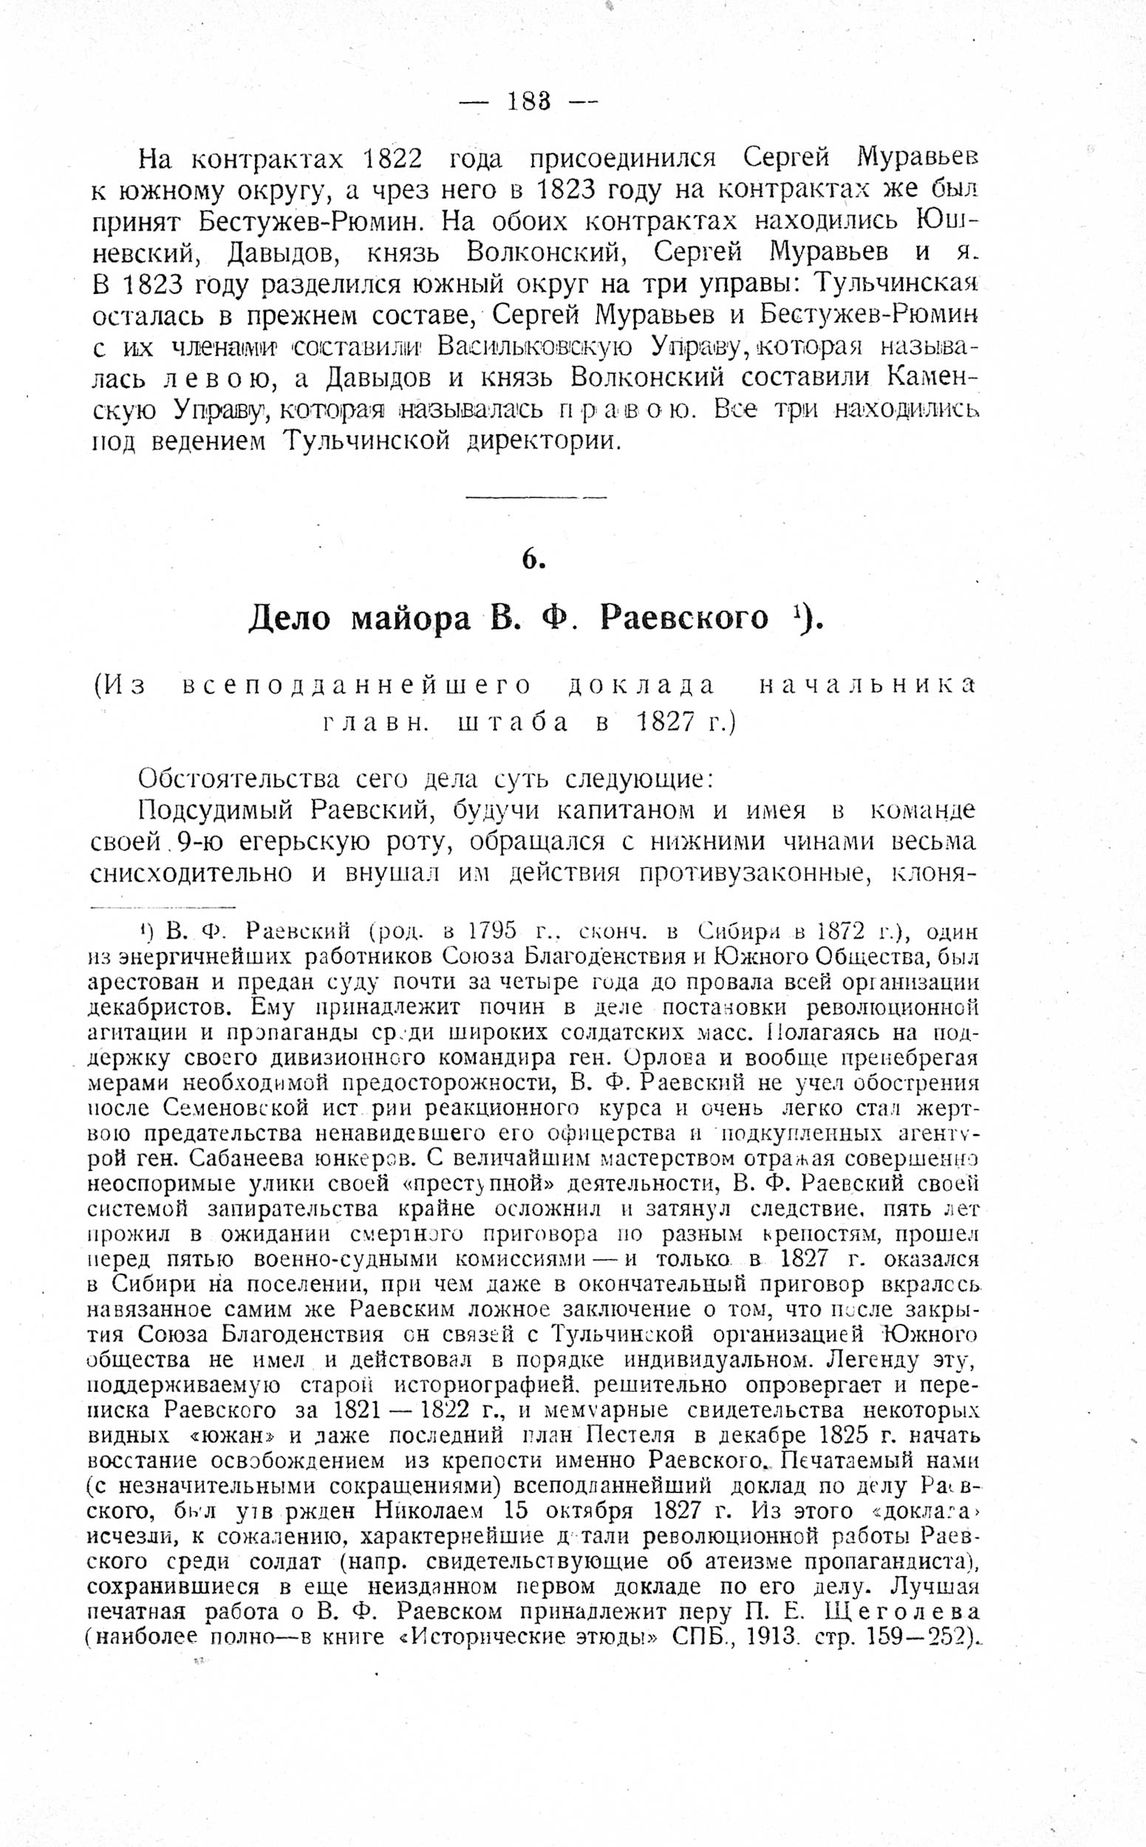 http://elib.shpl.ru/pages/625766/zooms/7